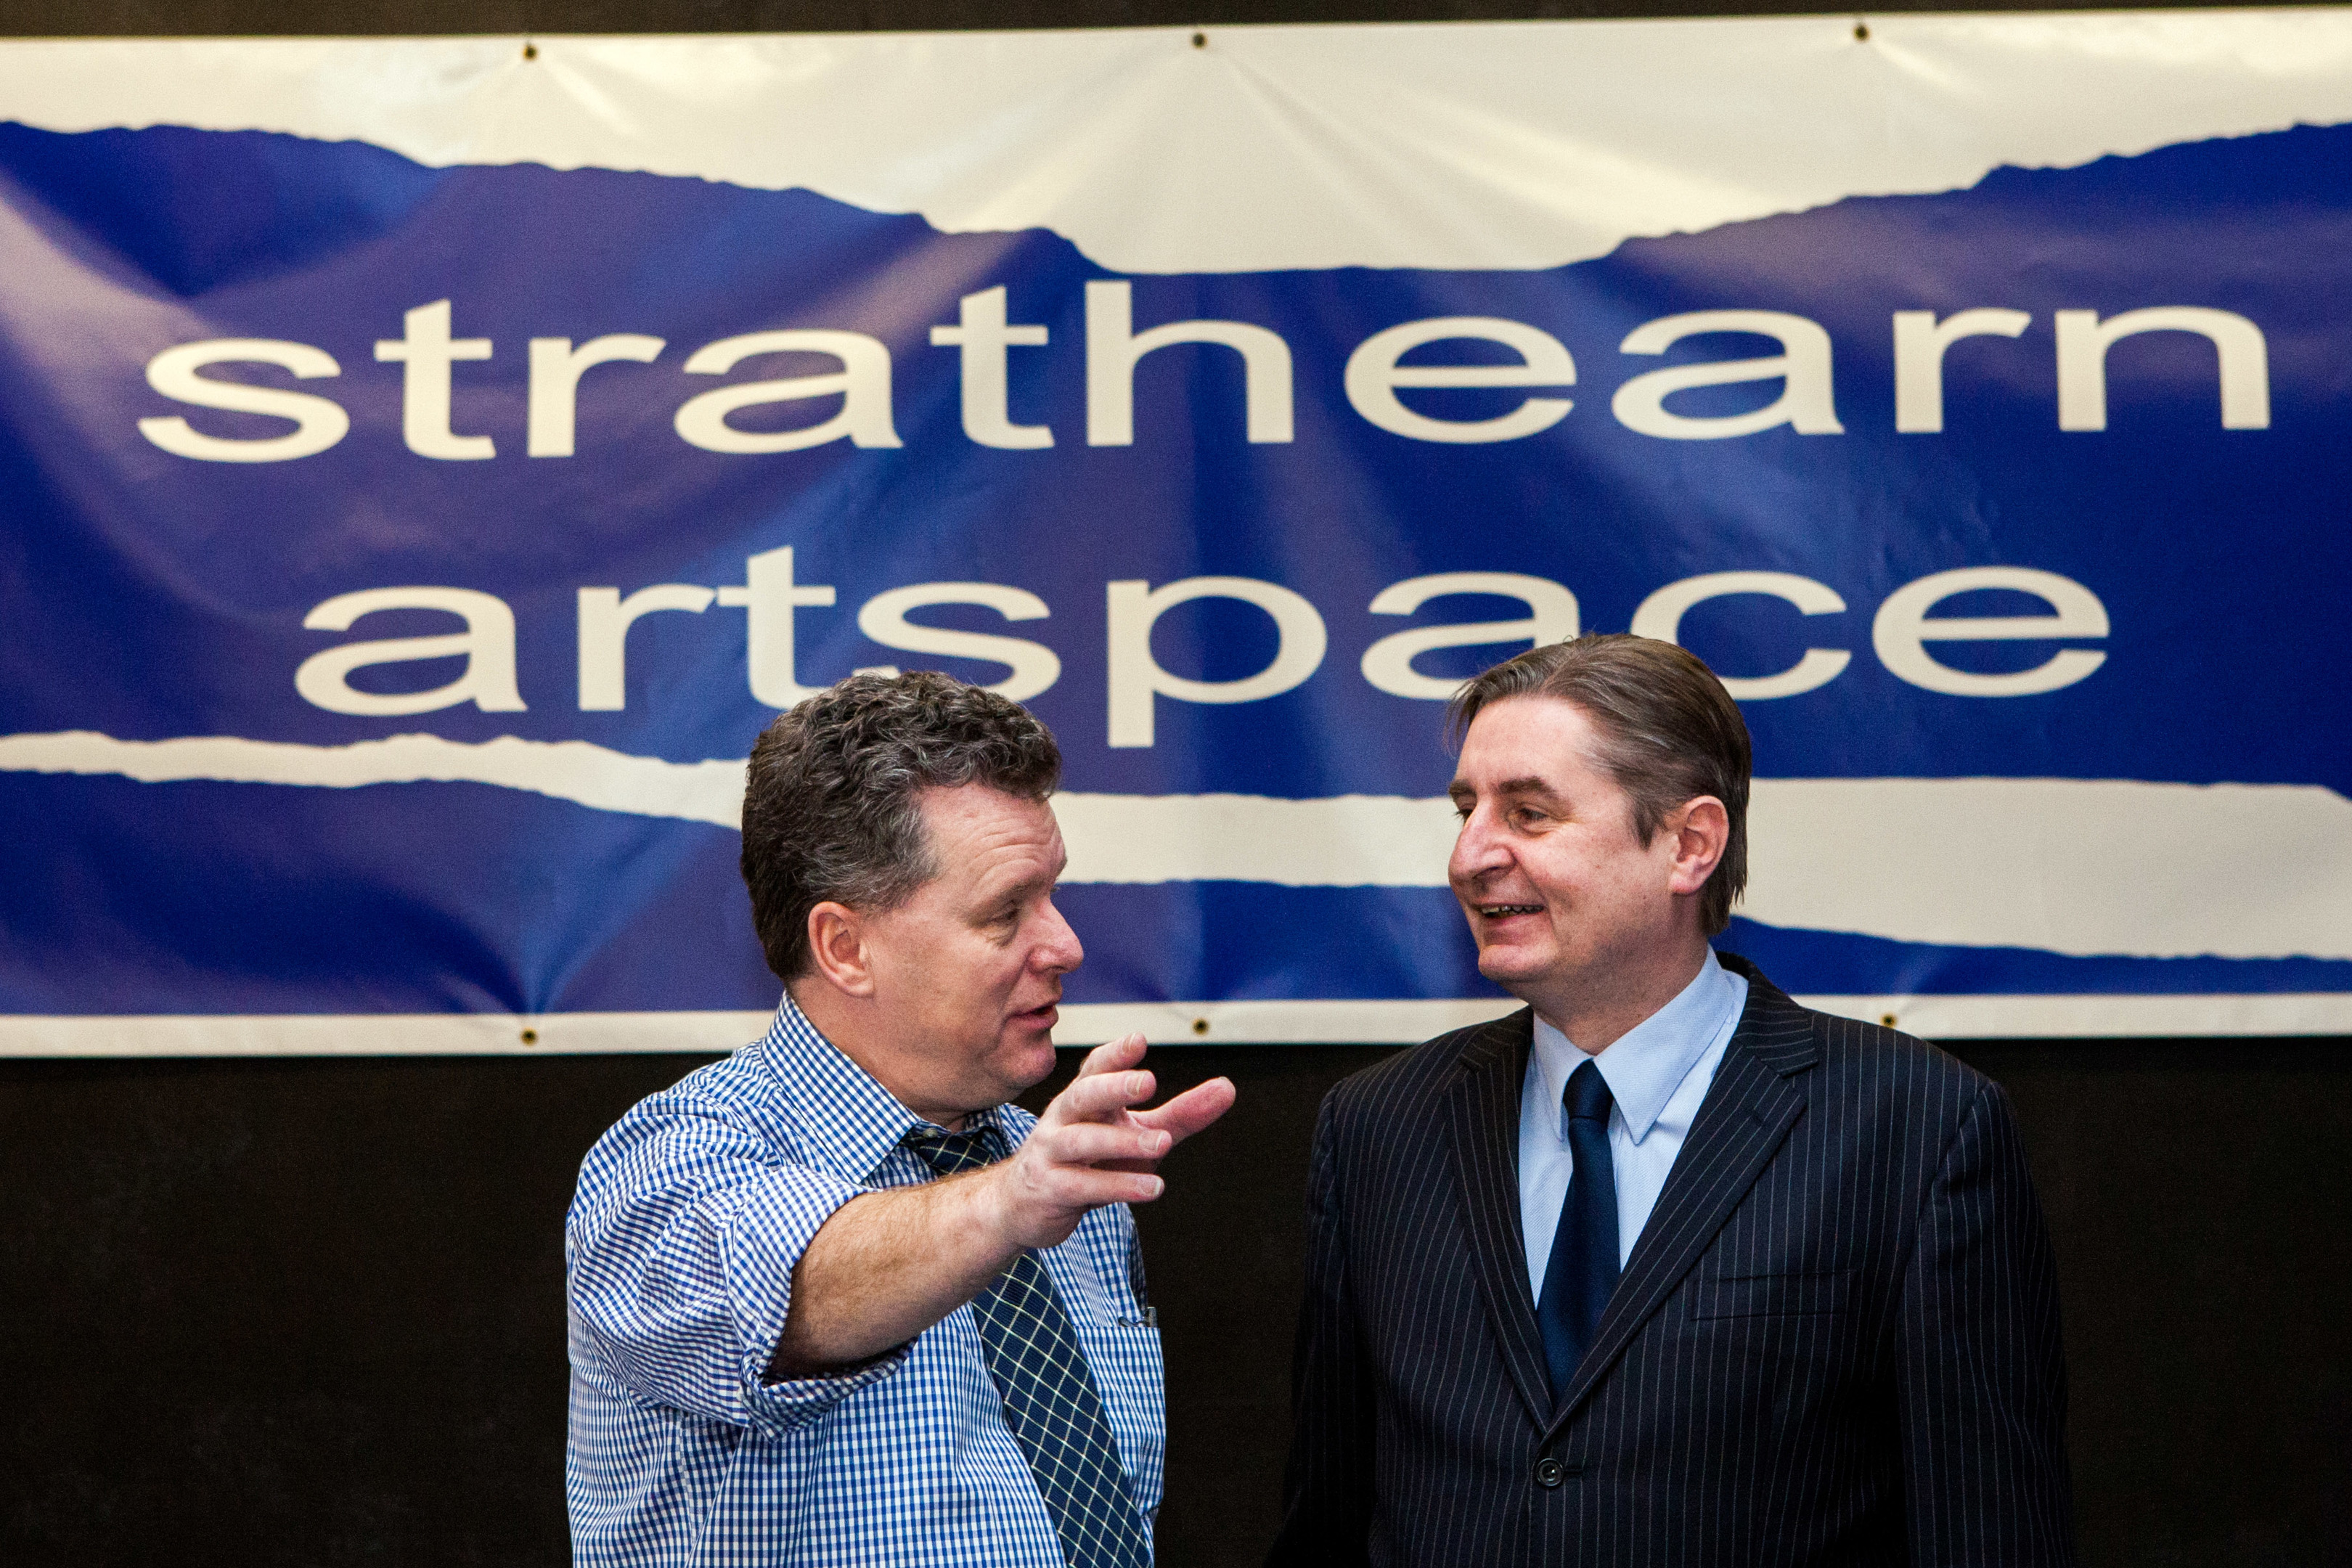 Tom Barron (left) and David Campbell (right), both of Strathearn Artspace, pictured at the Crieff venue.